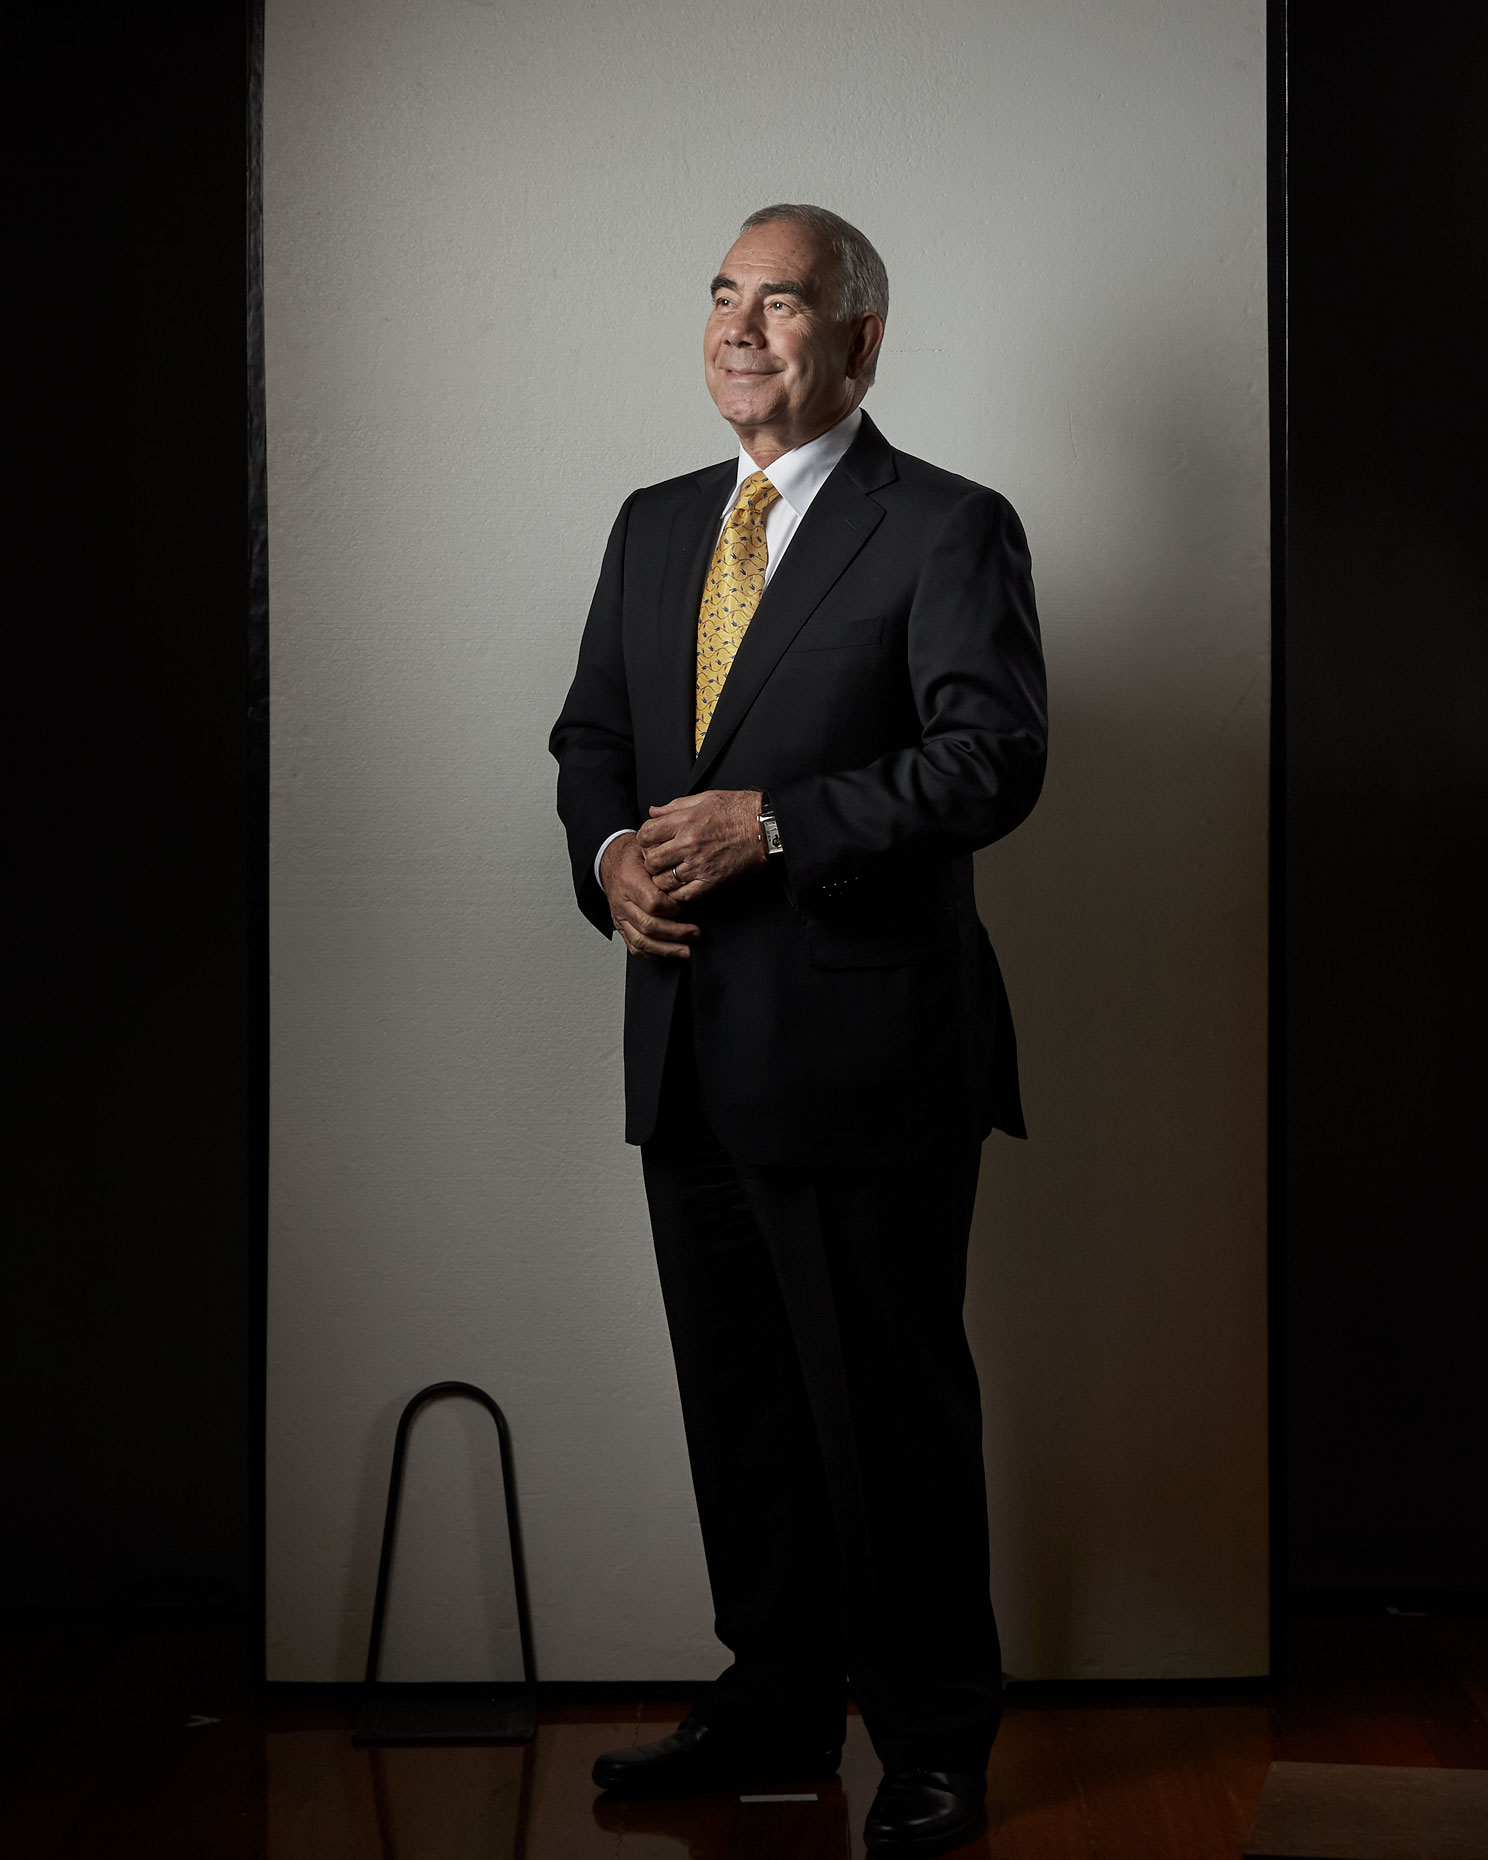 Paul Rizzo, Australian Business Executive